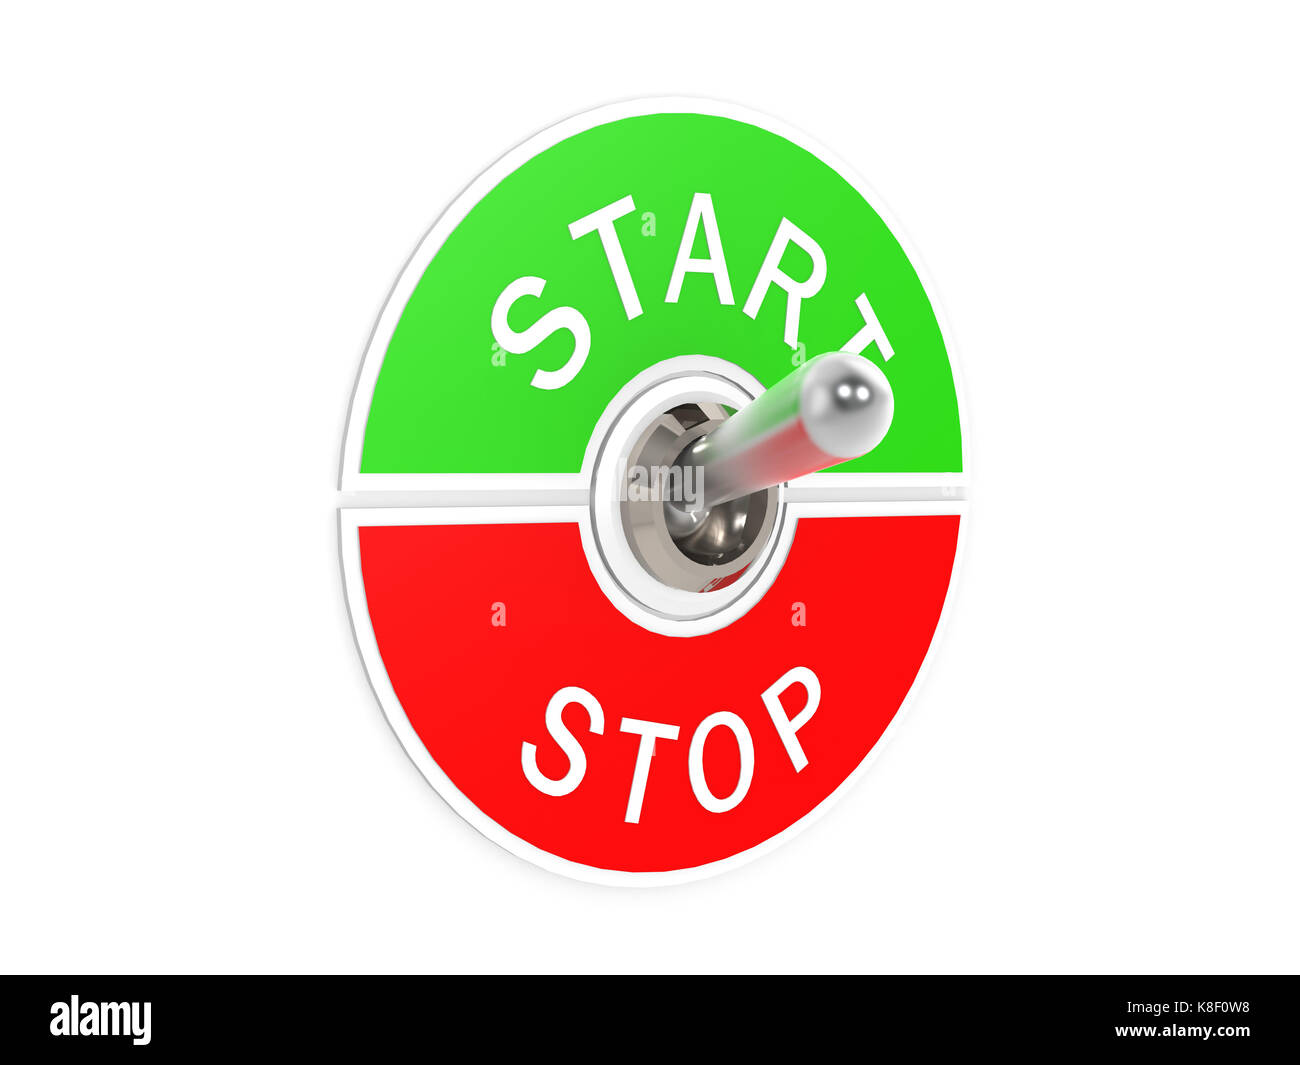 Start stop toggle switch - Stock Image